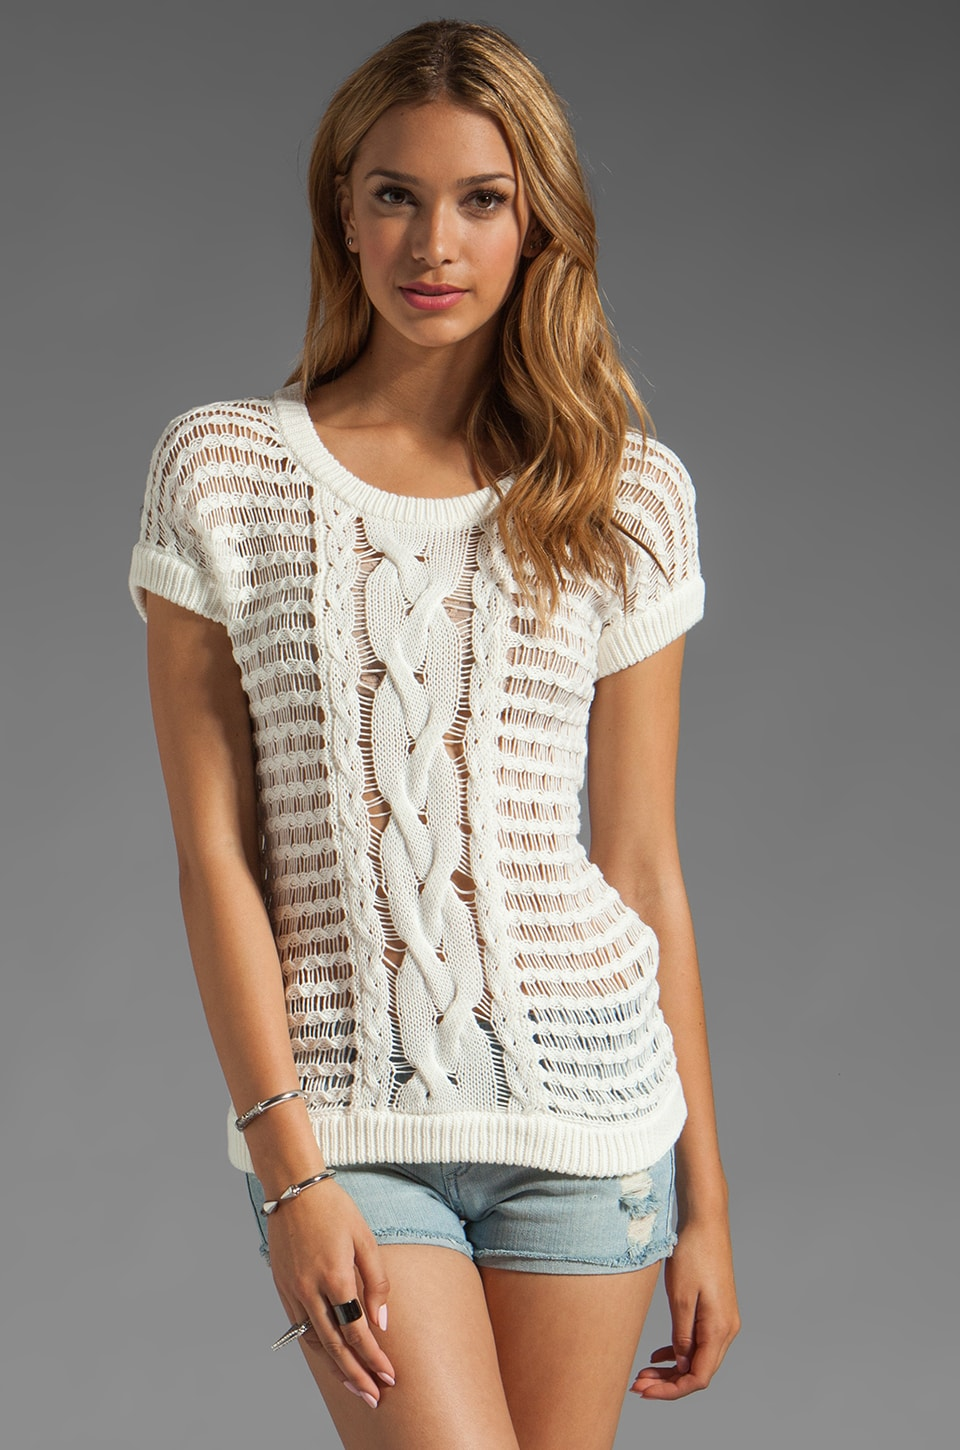 Trina Turk Owens Sweater in White Wash